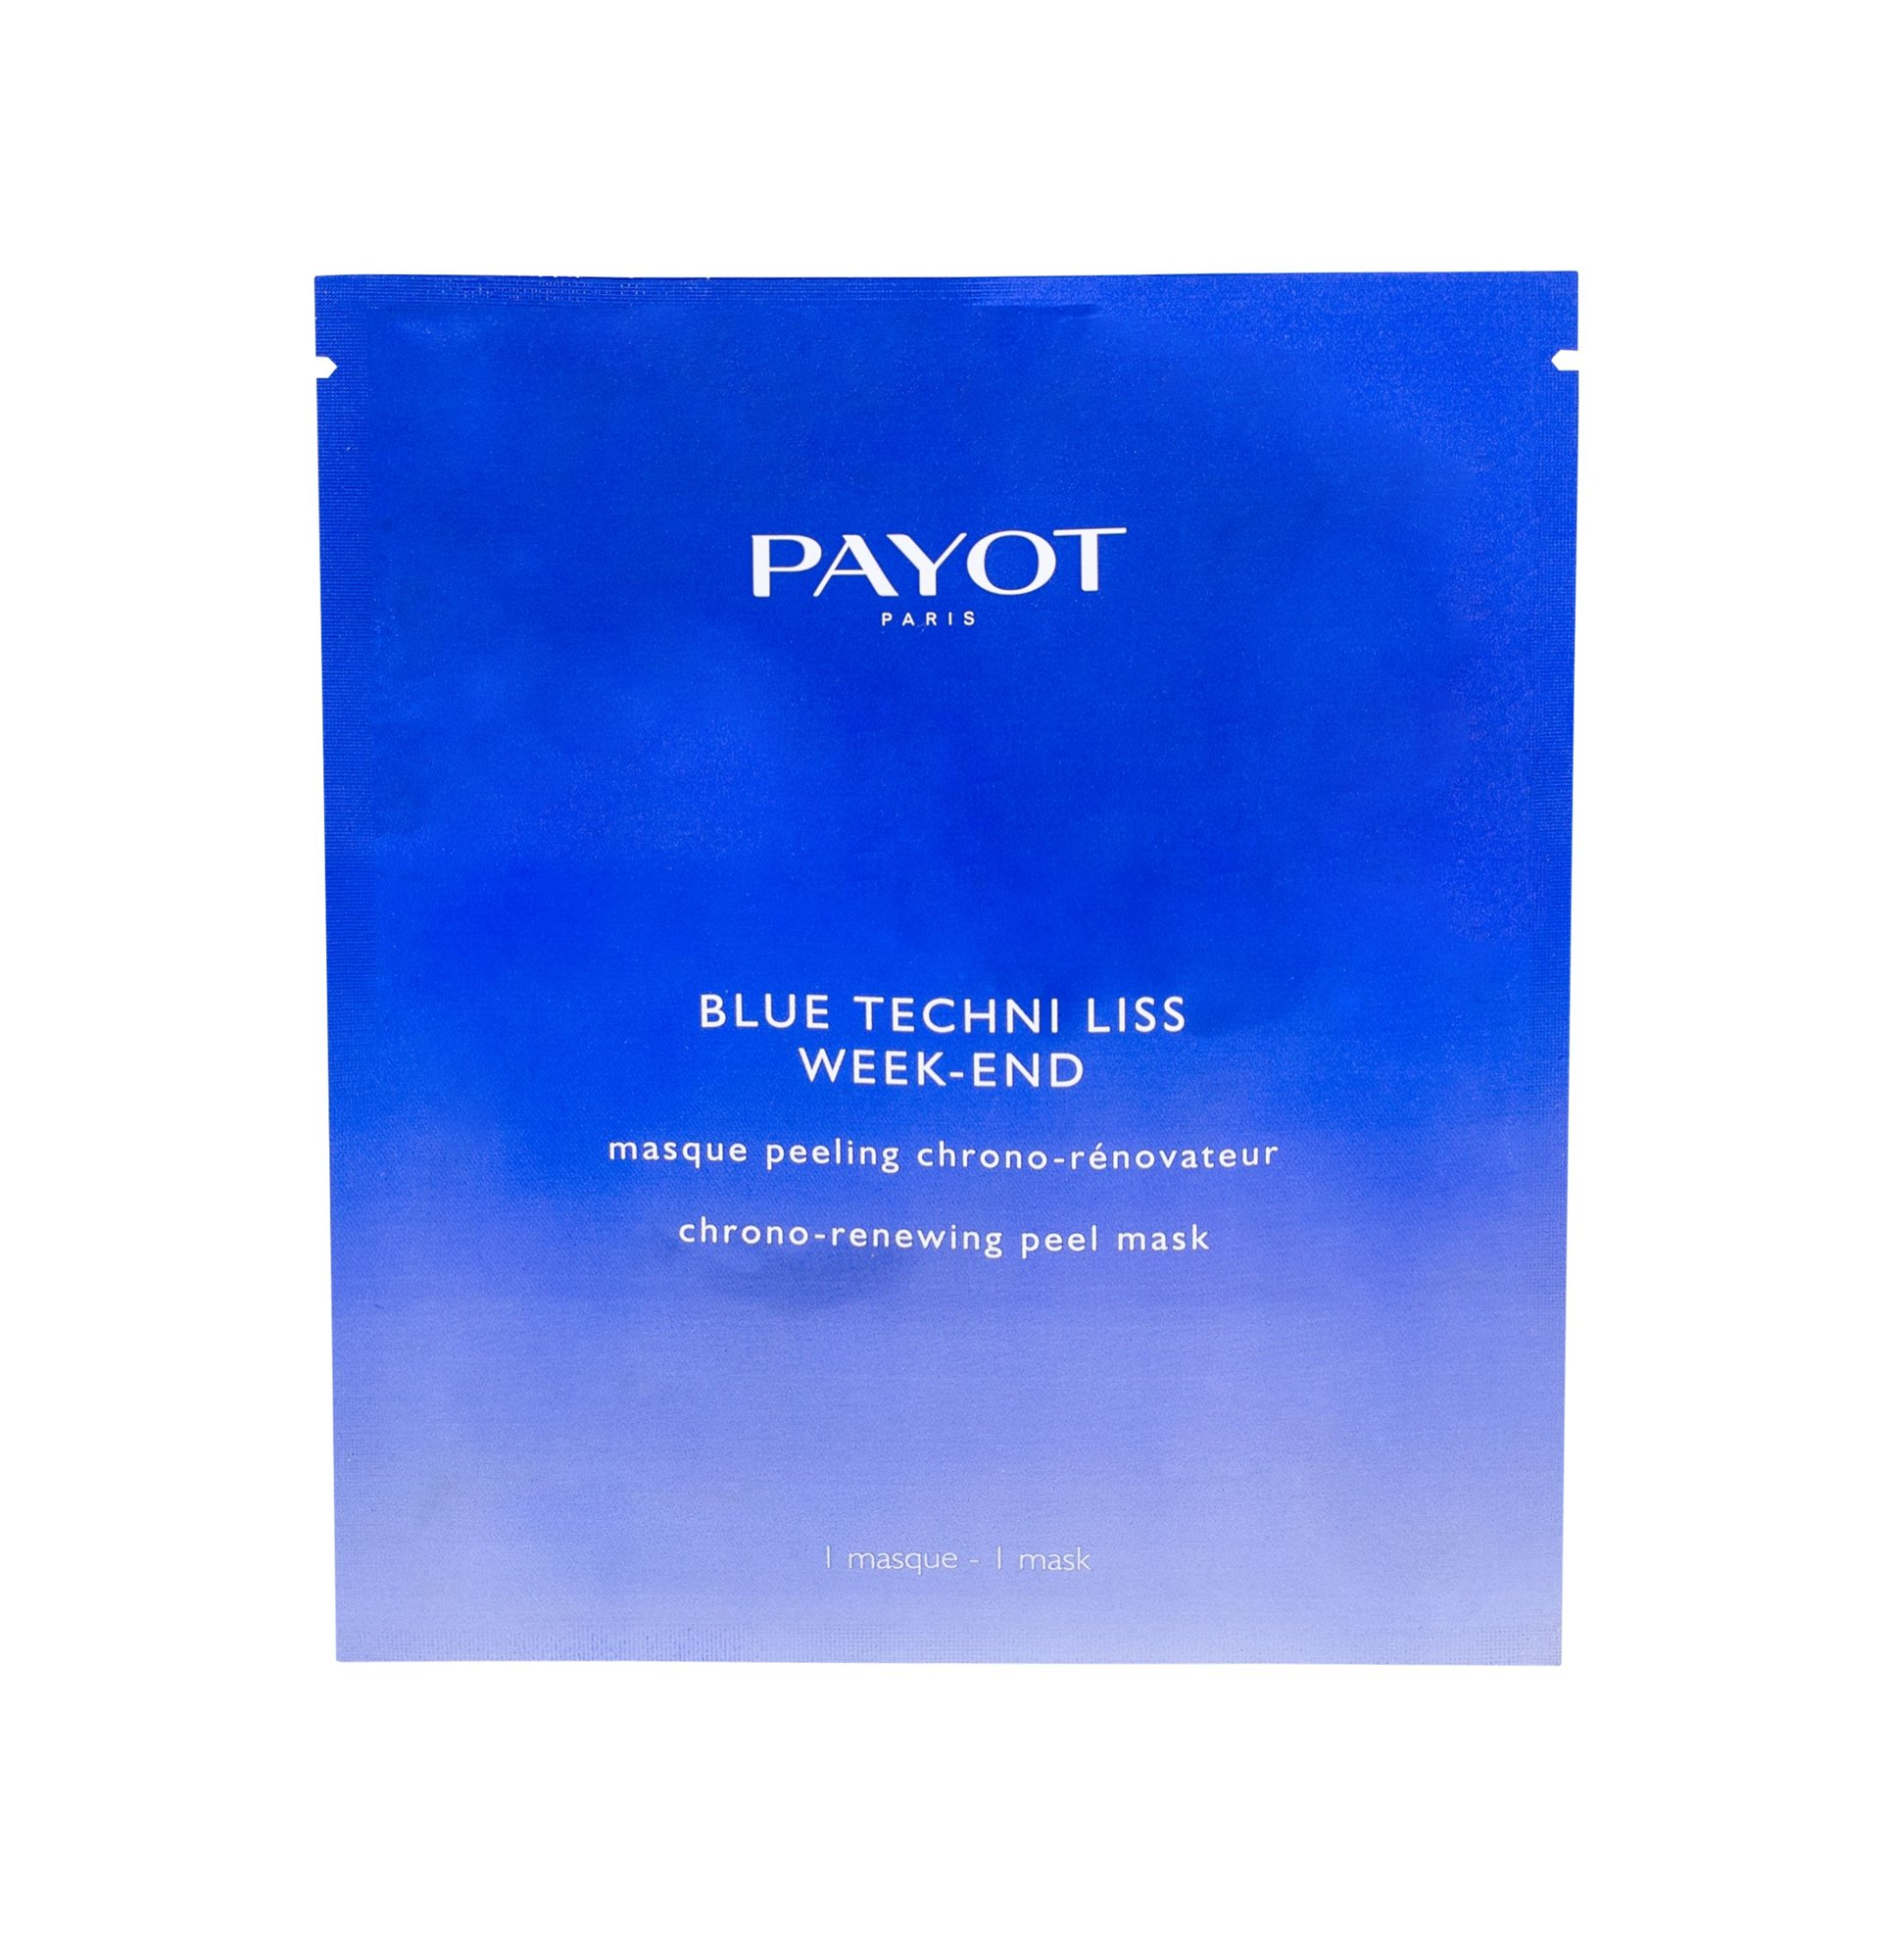 Payot Blue Techni Liss Week-End - pleťová maska W Objem: 1 ml